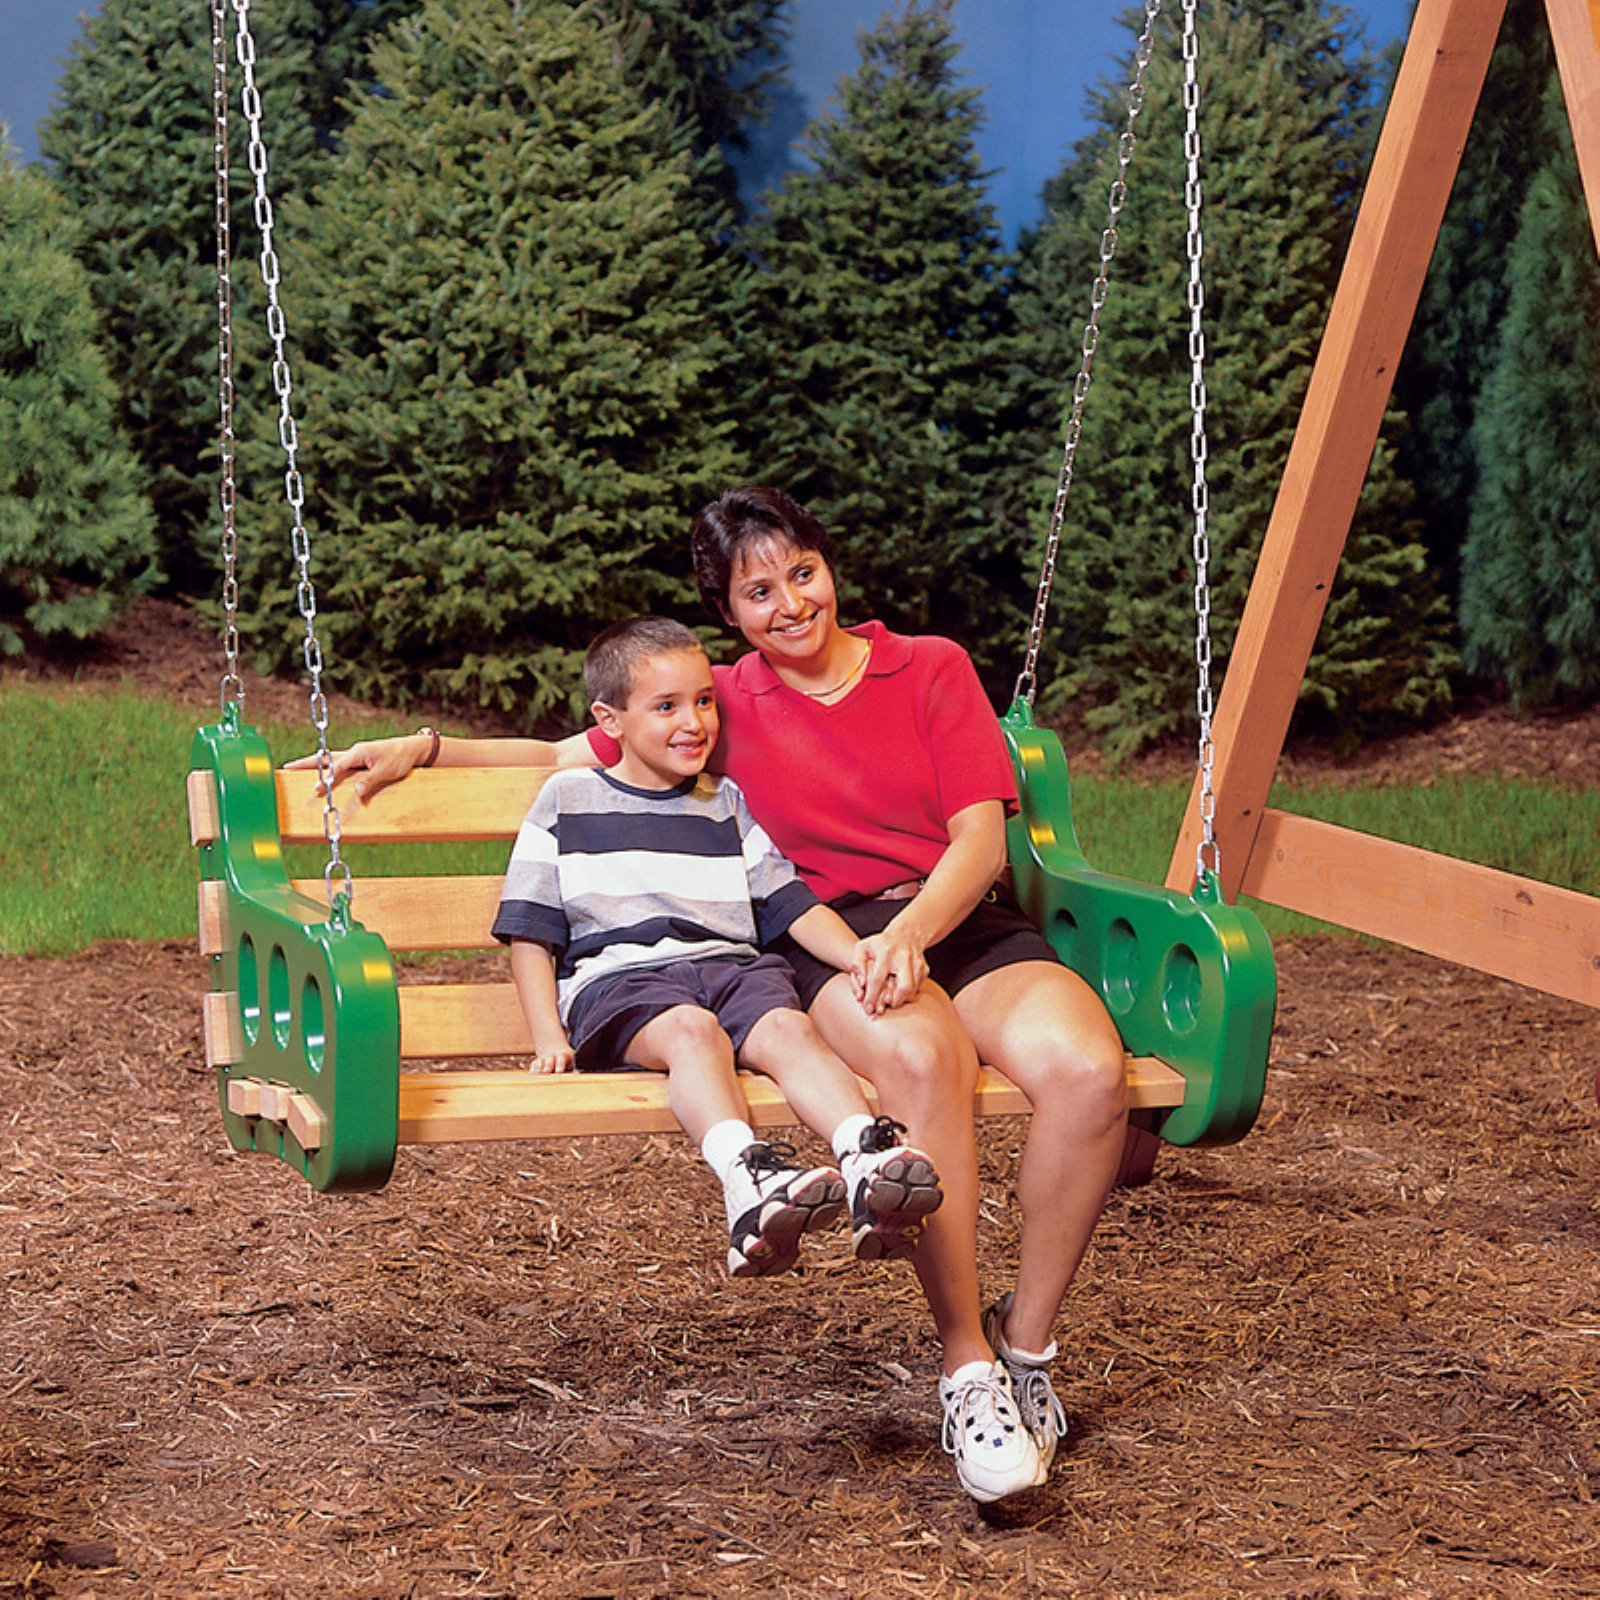 PlayStar Contoured Leisure Swing